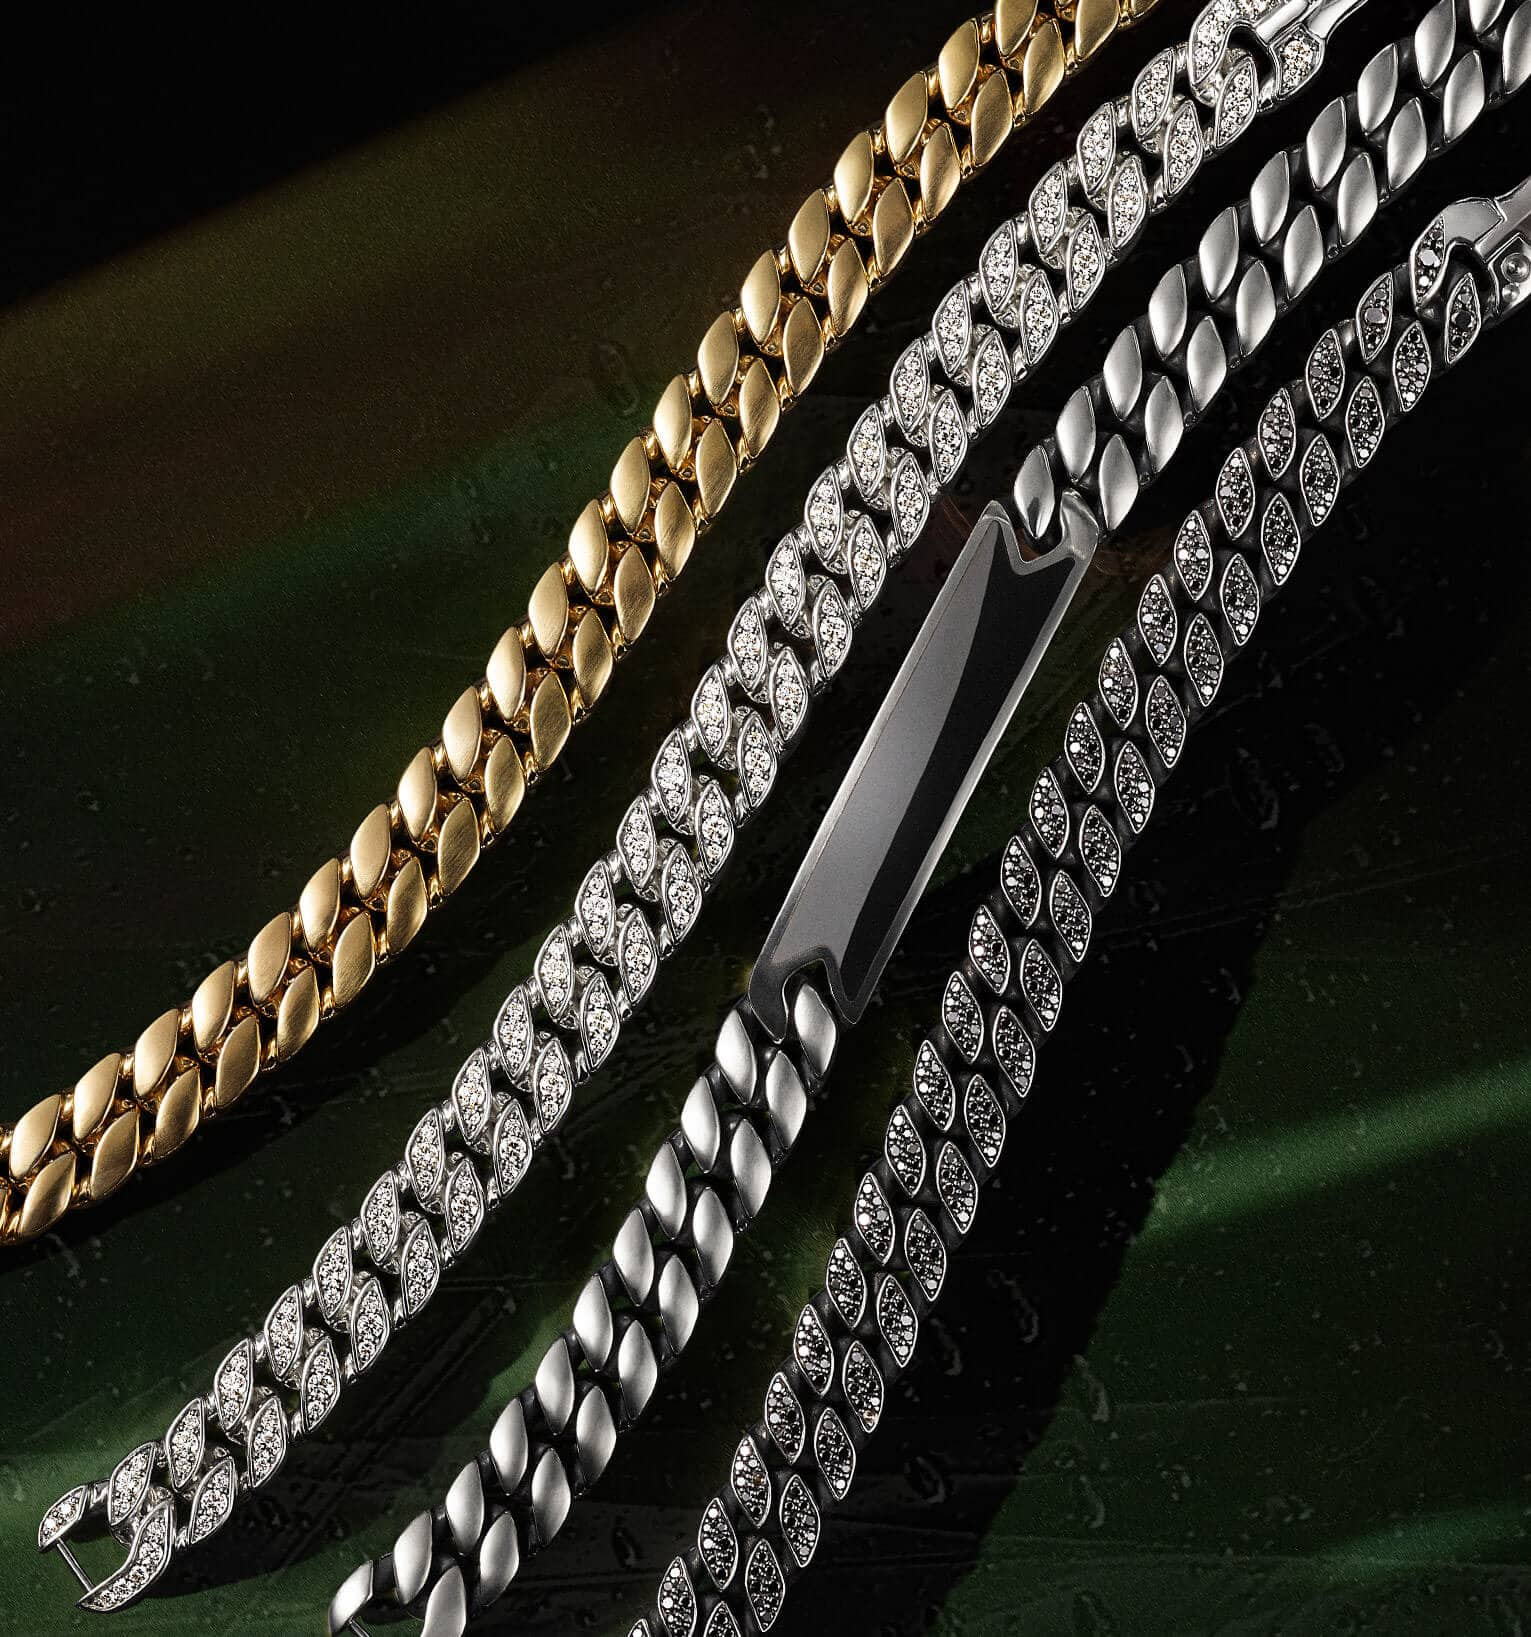 A color photograph shows a vertical row of four David Yurman men's curb chain bracelets atop a dark green backdrop illuminated by light. Three of the bracelets are crafted from sterling silver with or without white or black diamonds or black onyx. One bracelet is crafted from 18K yellow gold.